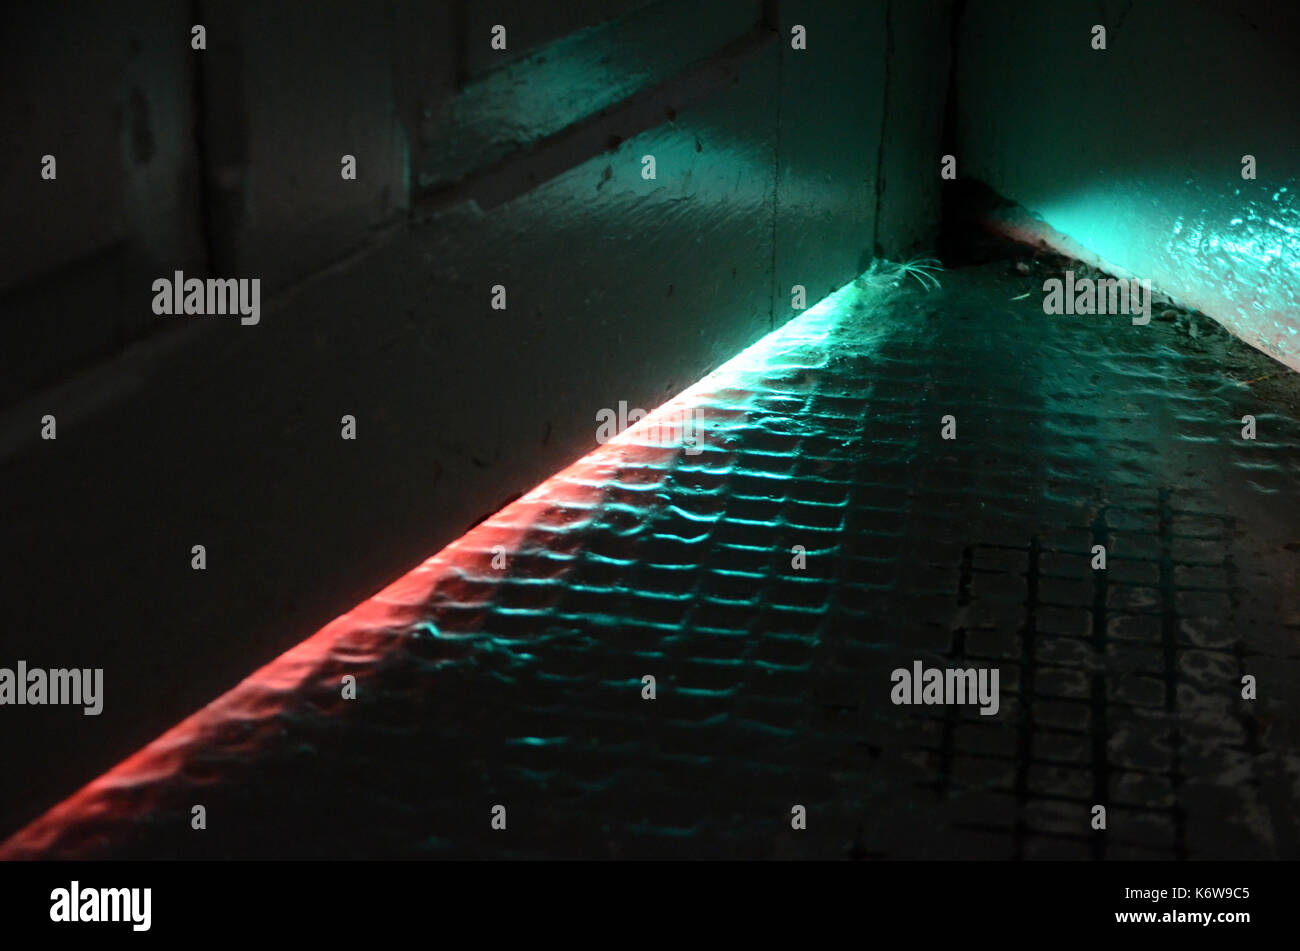 Light in strange colors seen coming from under a door. - Stock Image